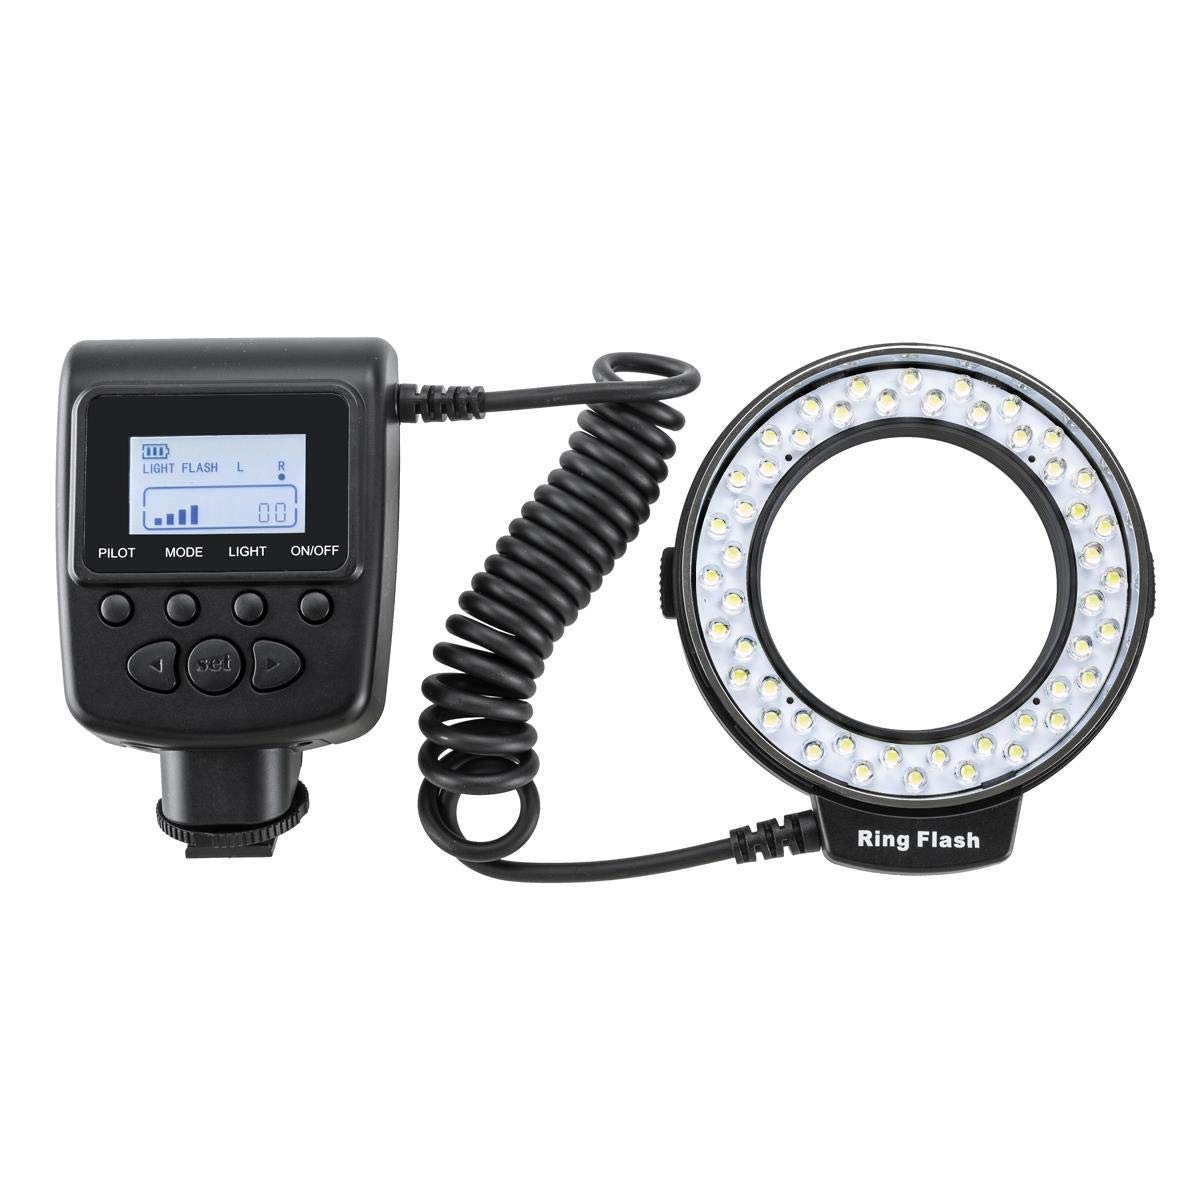 Flashpoint Macro LED Ring Flash VL-48 Bundle with Adapters for 49, 52, 55, 58, 62, 67, 72, and 77mm Diameter Lenses. by Flashpoint